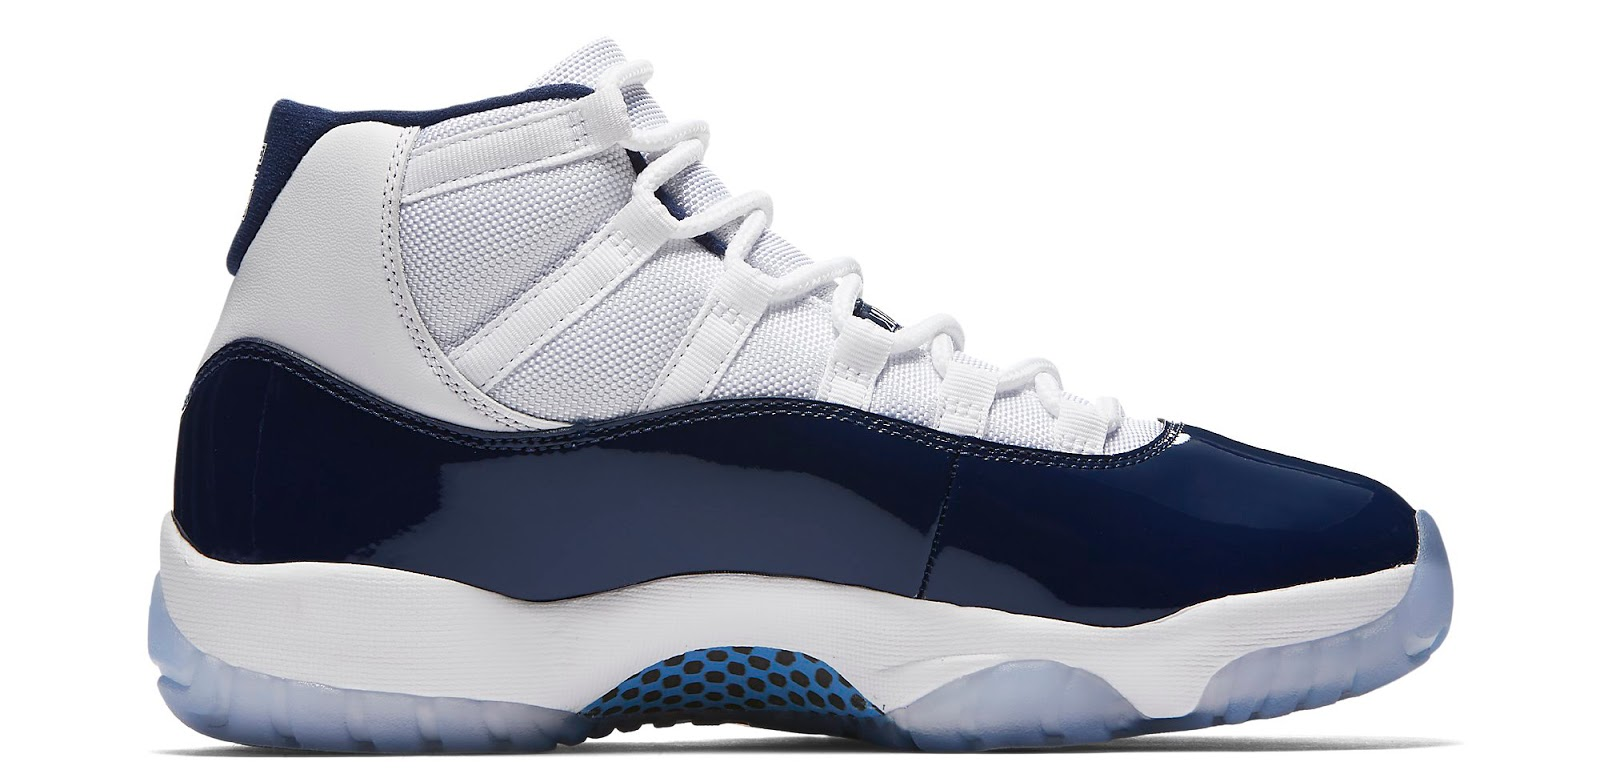 reputable site 8d41b 1df65 official air jordan 11 retro carolina blå ccad7 36734